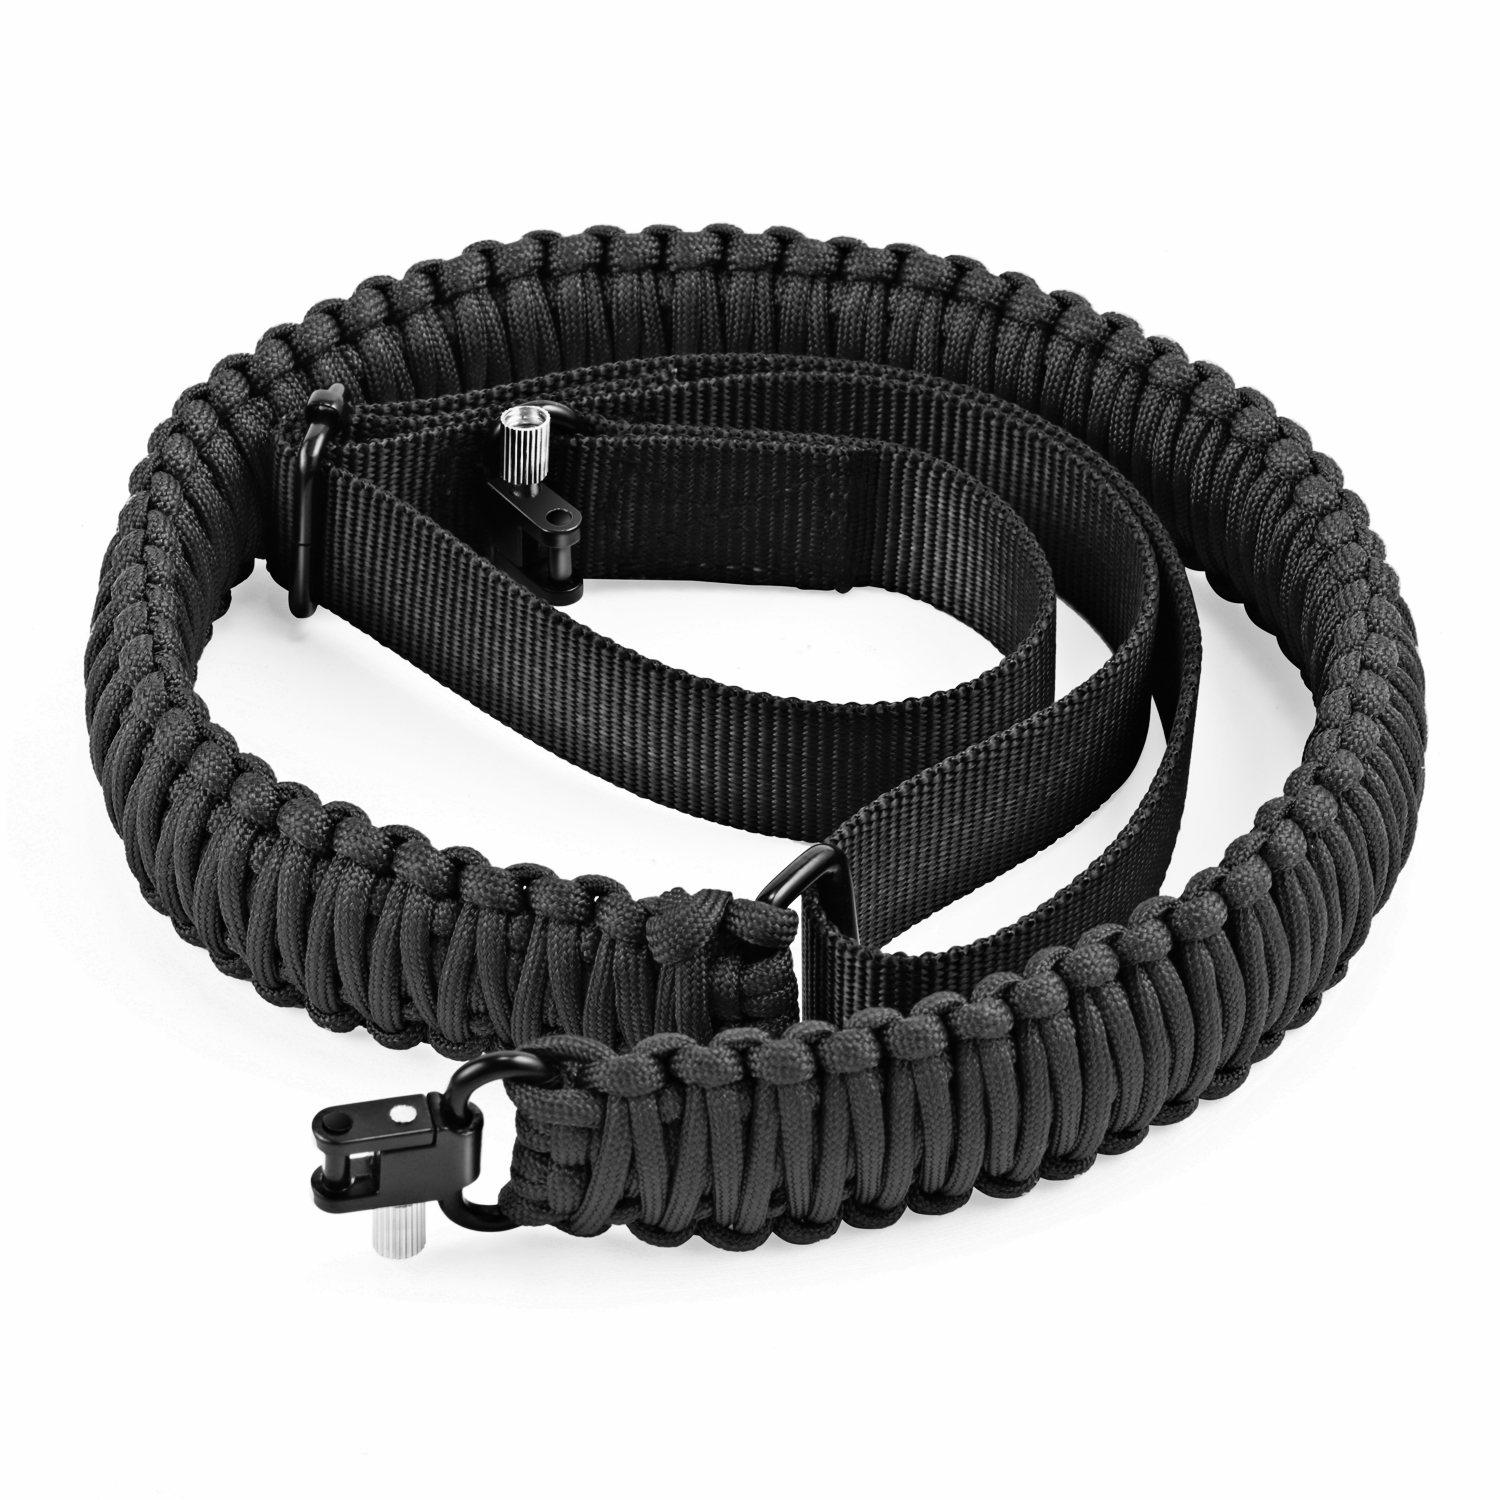 Gonex Gun Sling 550 Paracord Rifle Sling Adjustable with Swivel, Tactical Gun Sling for Hunting Camping Outdoors